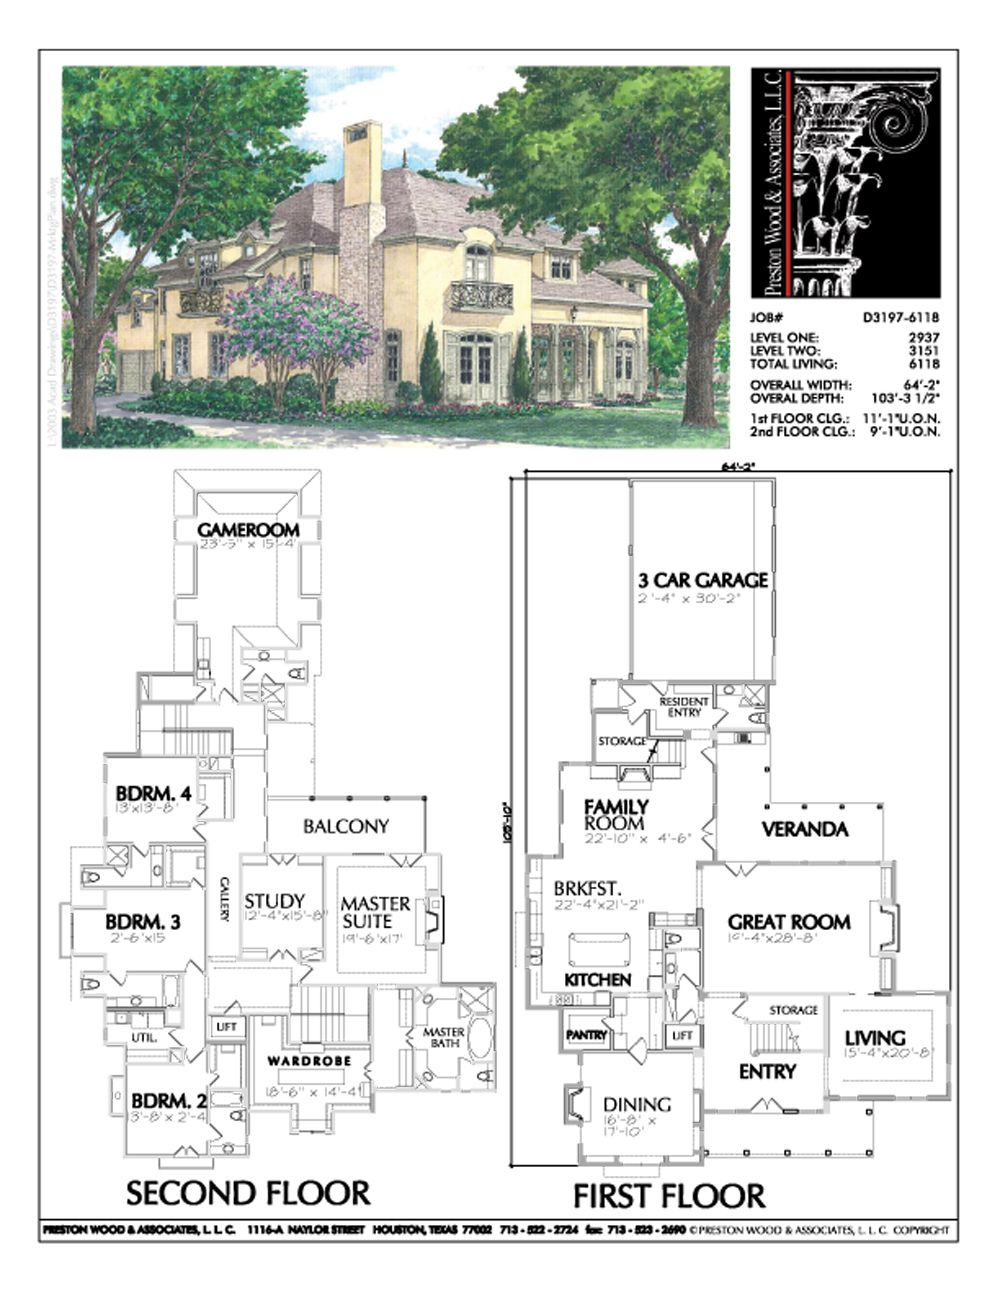 Two Story Urban Home Plan Ad3197 House Plans Unique Floor Plans Residential Building Plan